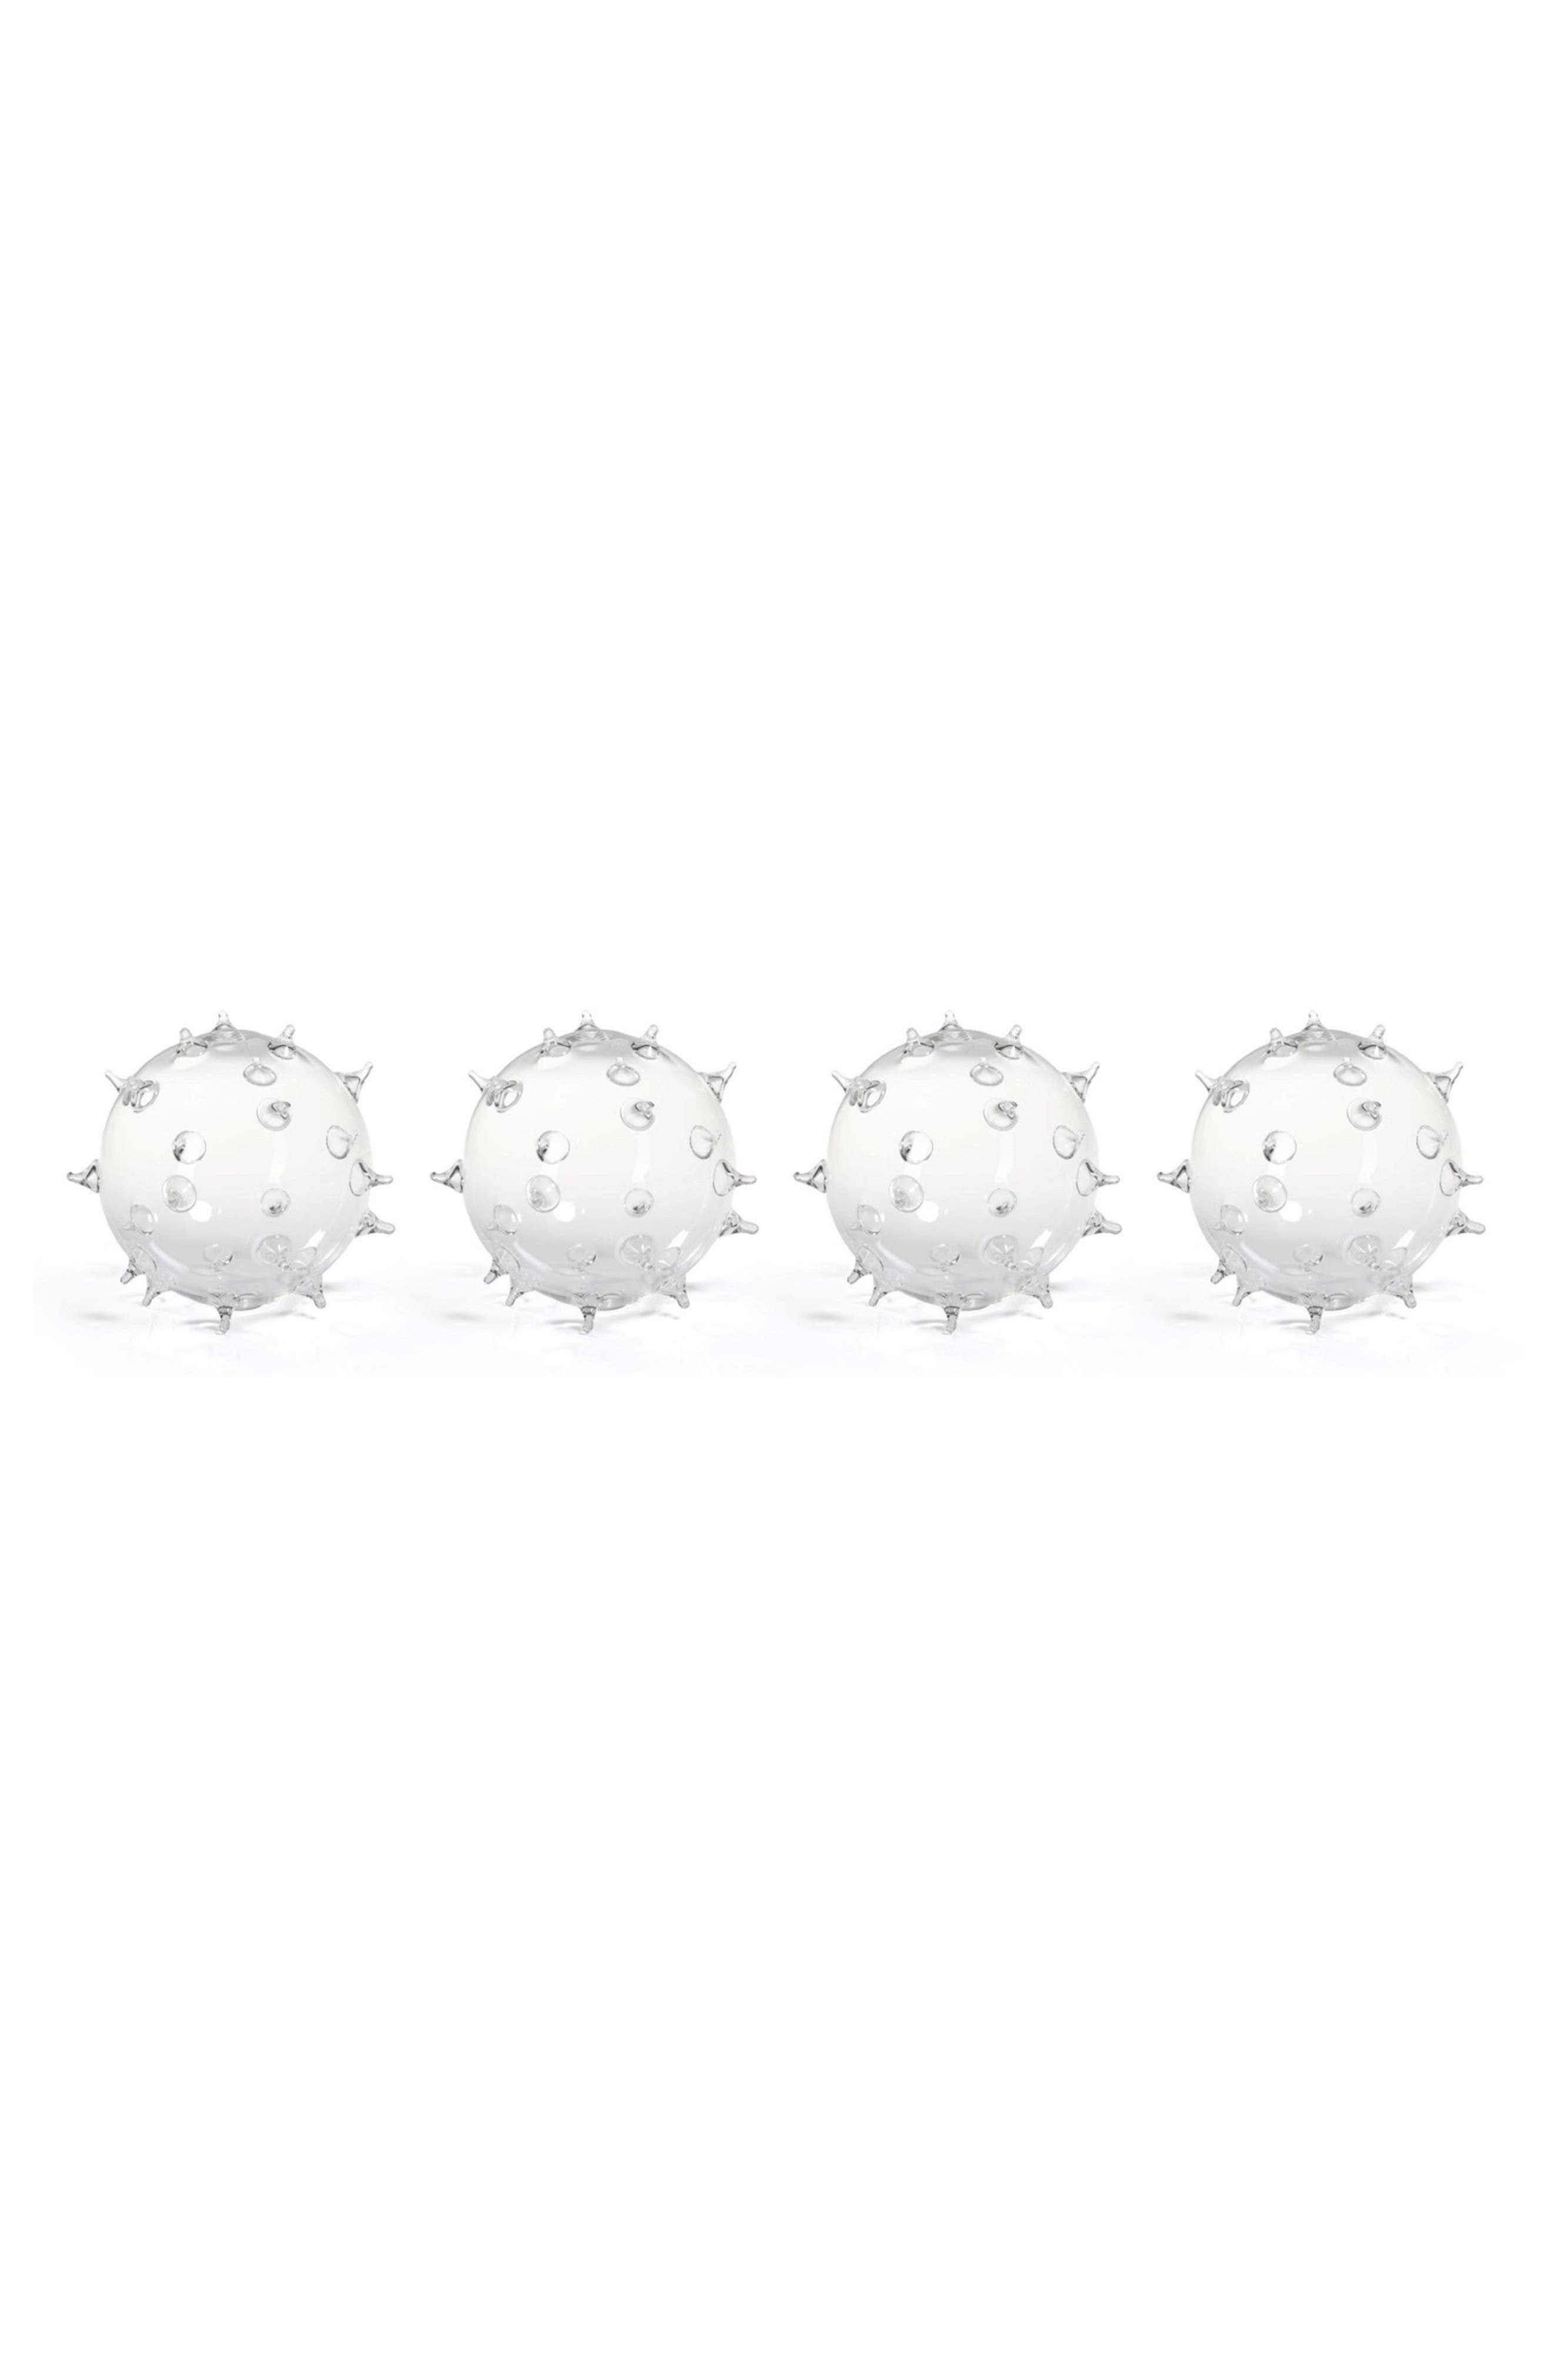 Suri Set of 4 Spiked Glass Vases,                         Main,                         color, Clear